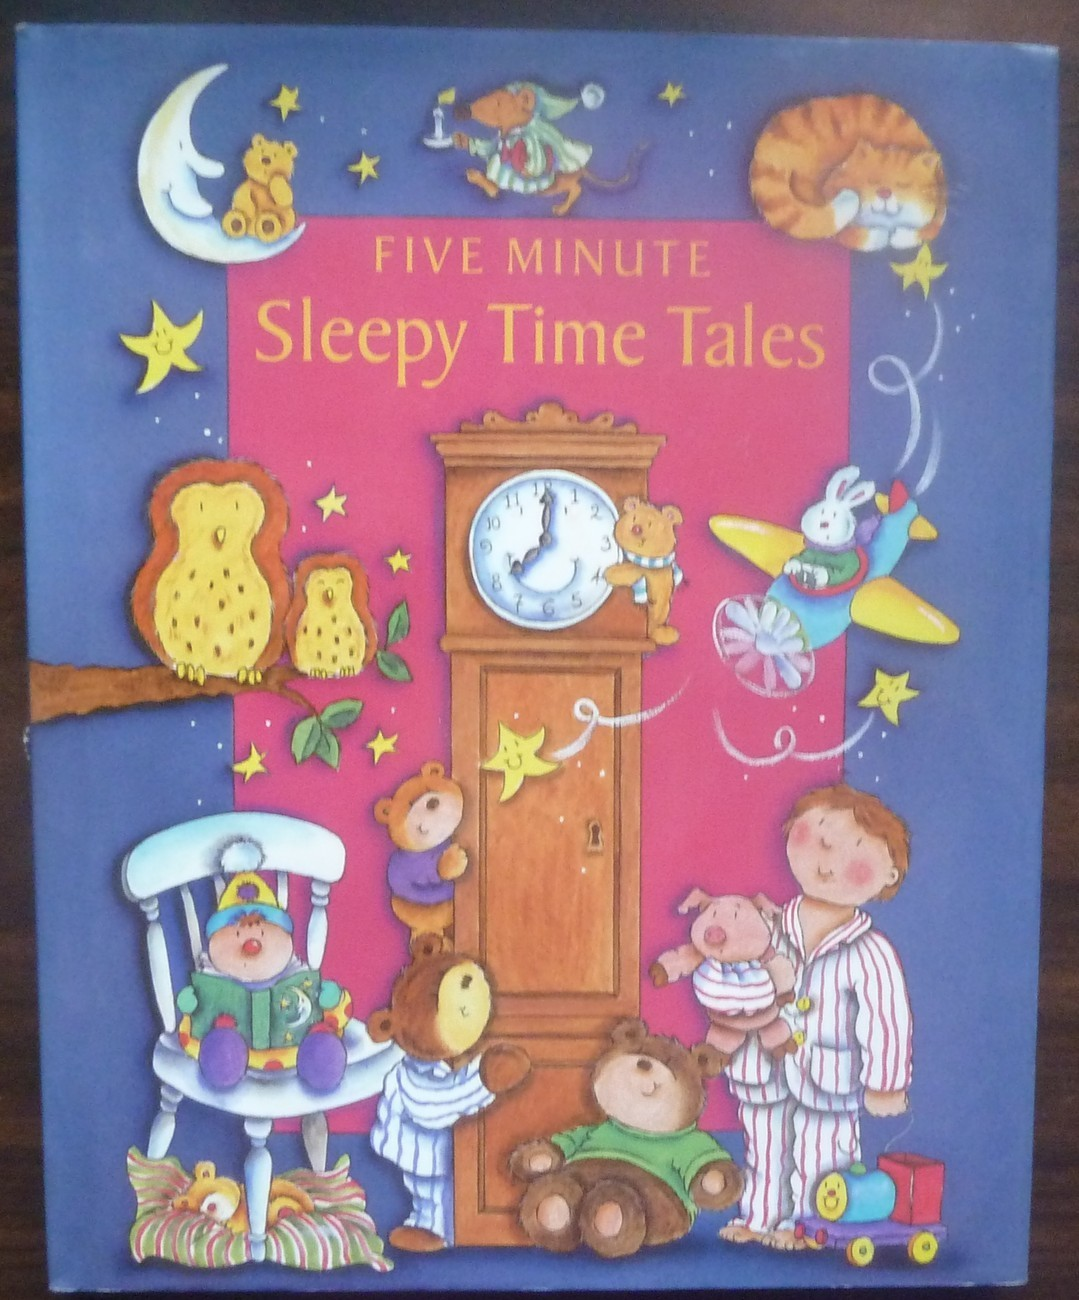 Five Minute Sleepy Time Tales